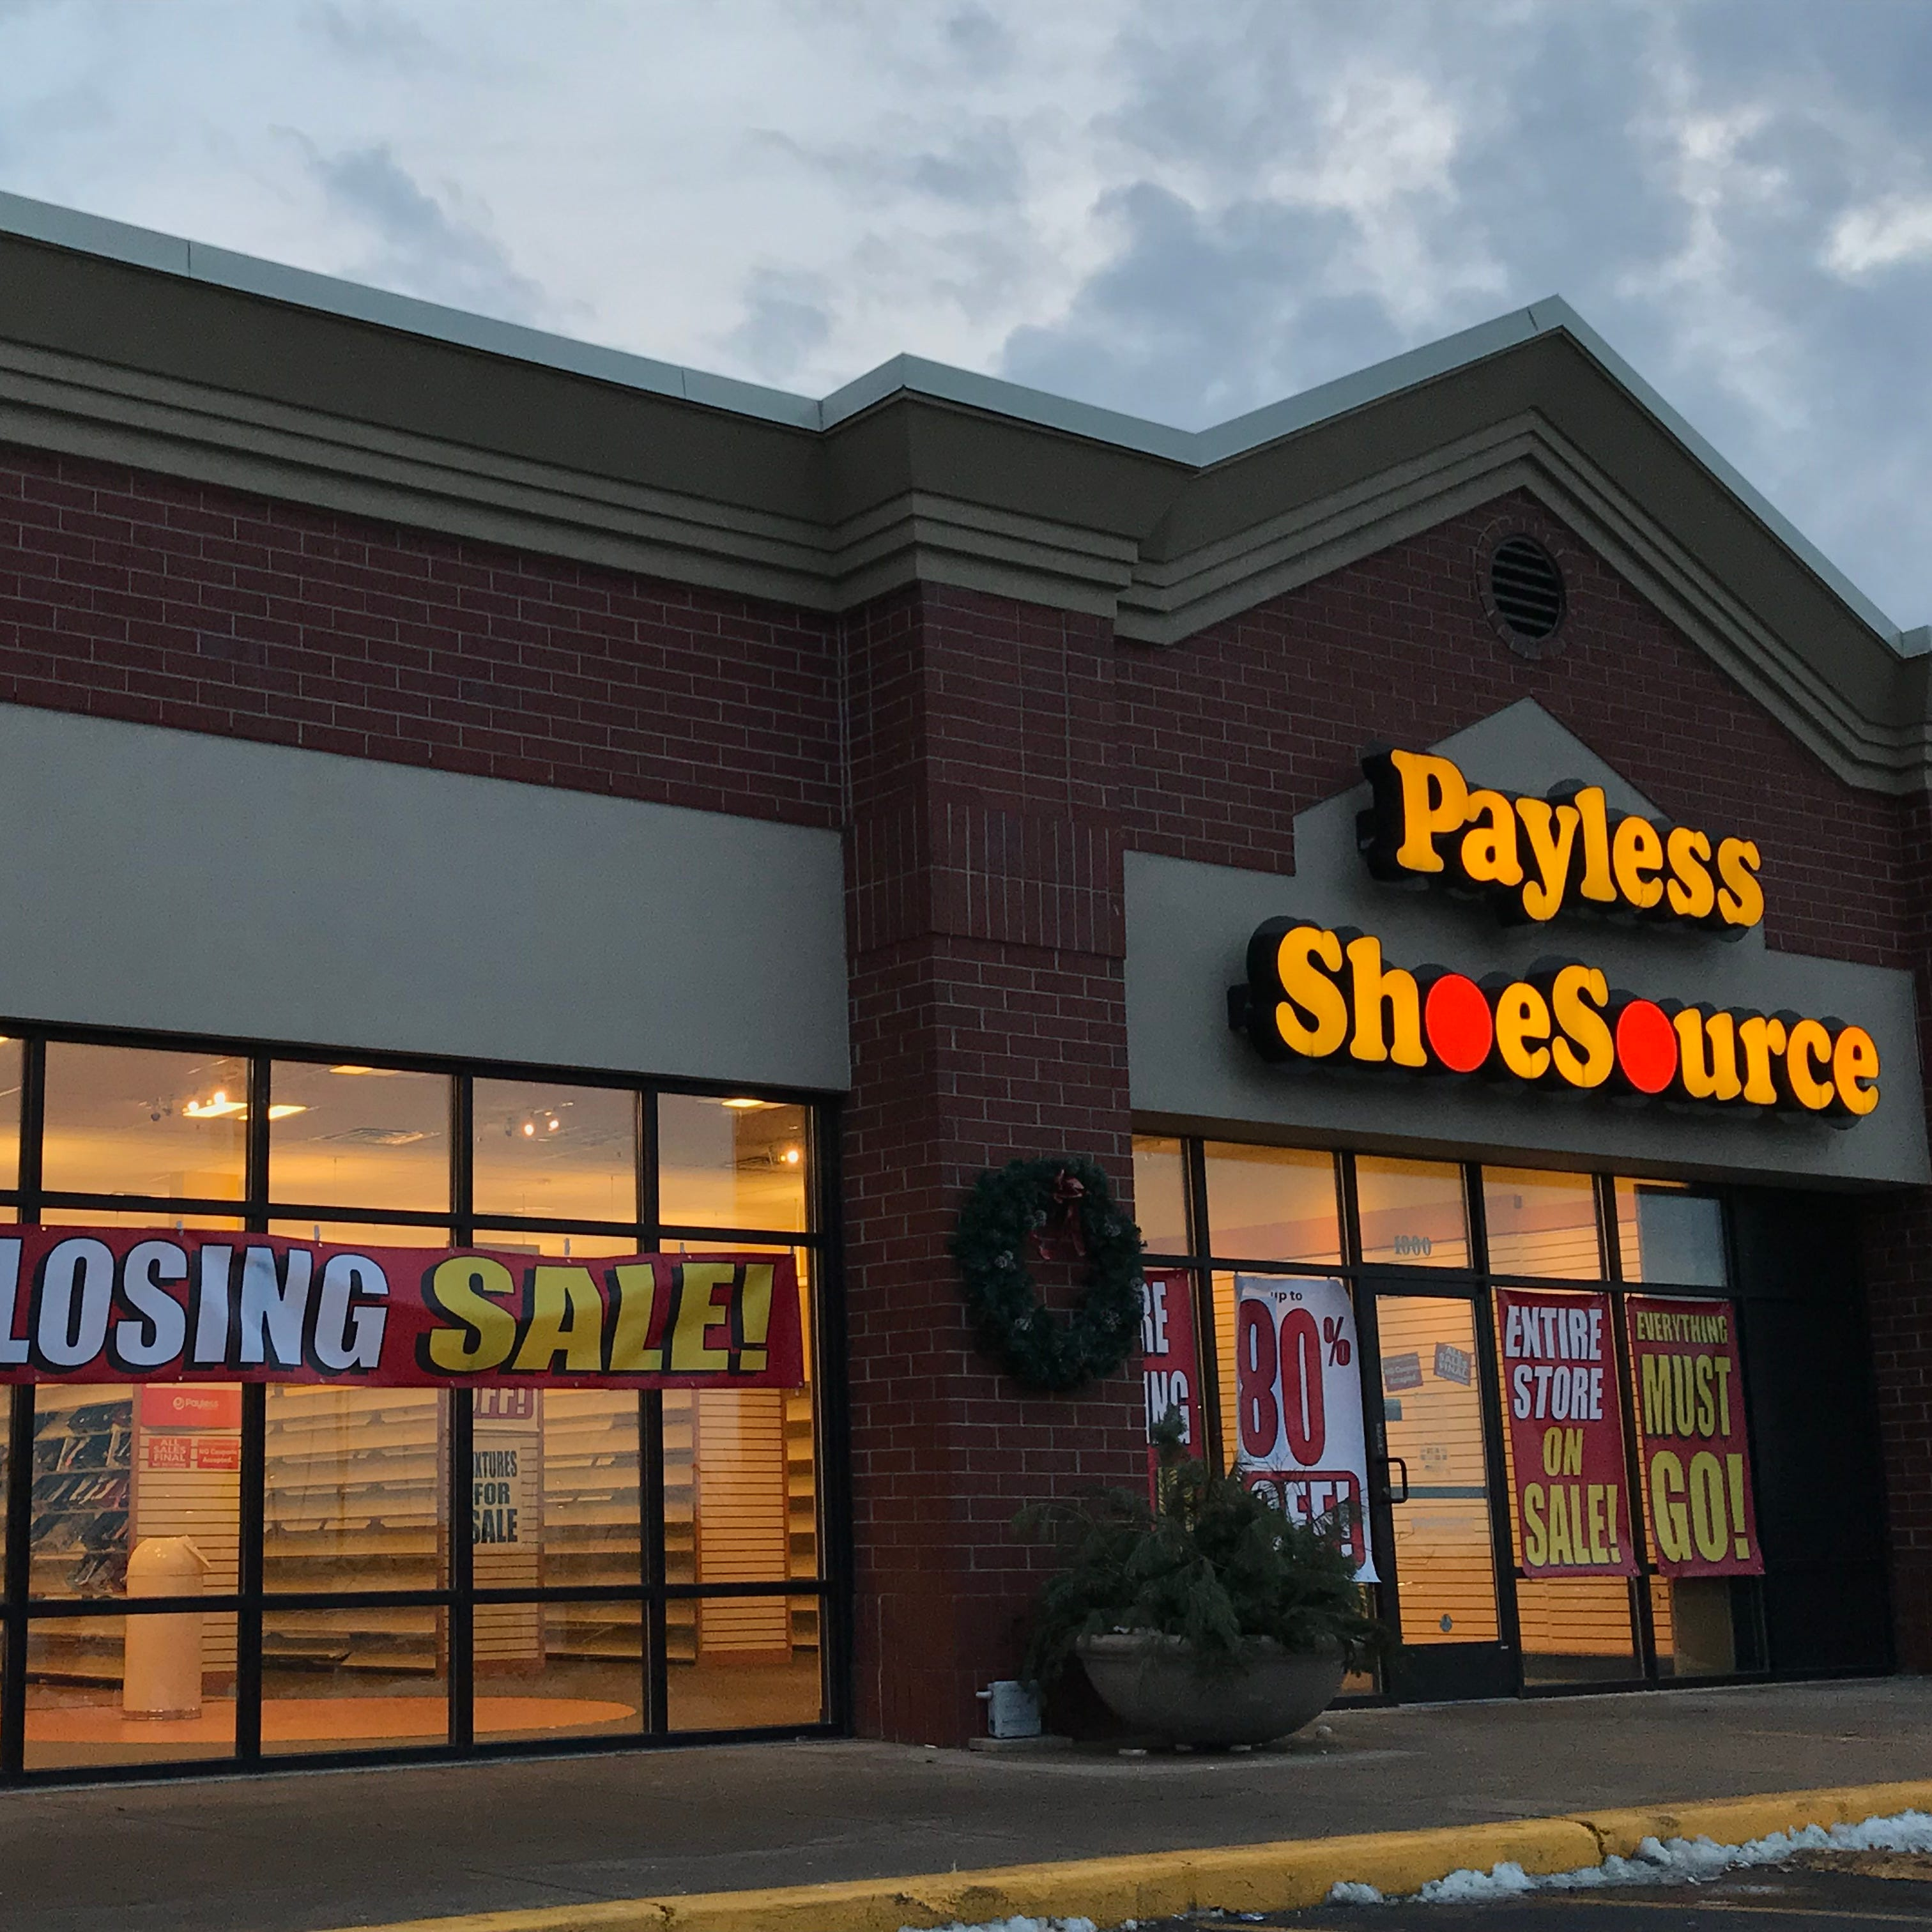 Payless closing stores: Dozens of Tennessee shoe stores expected to close, report says